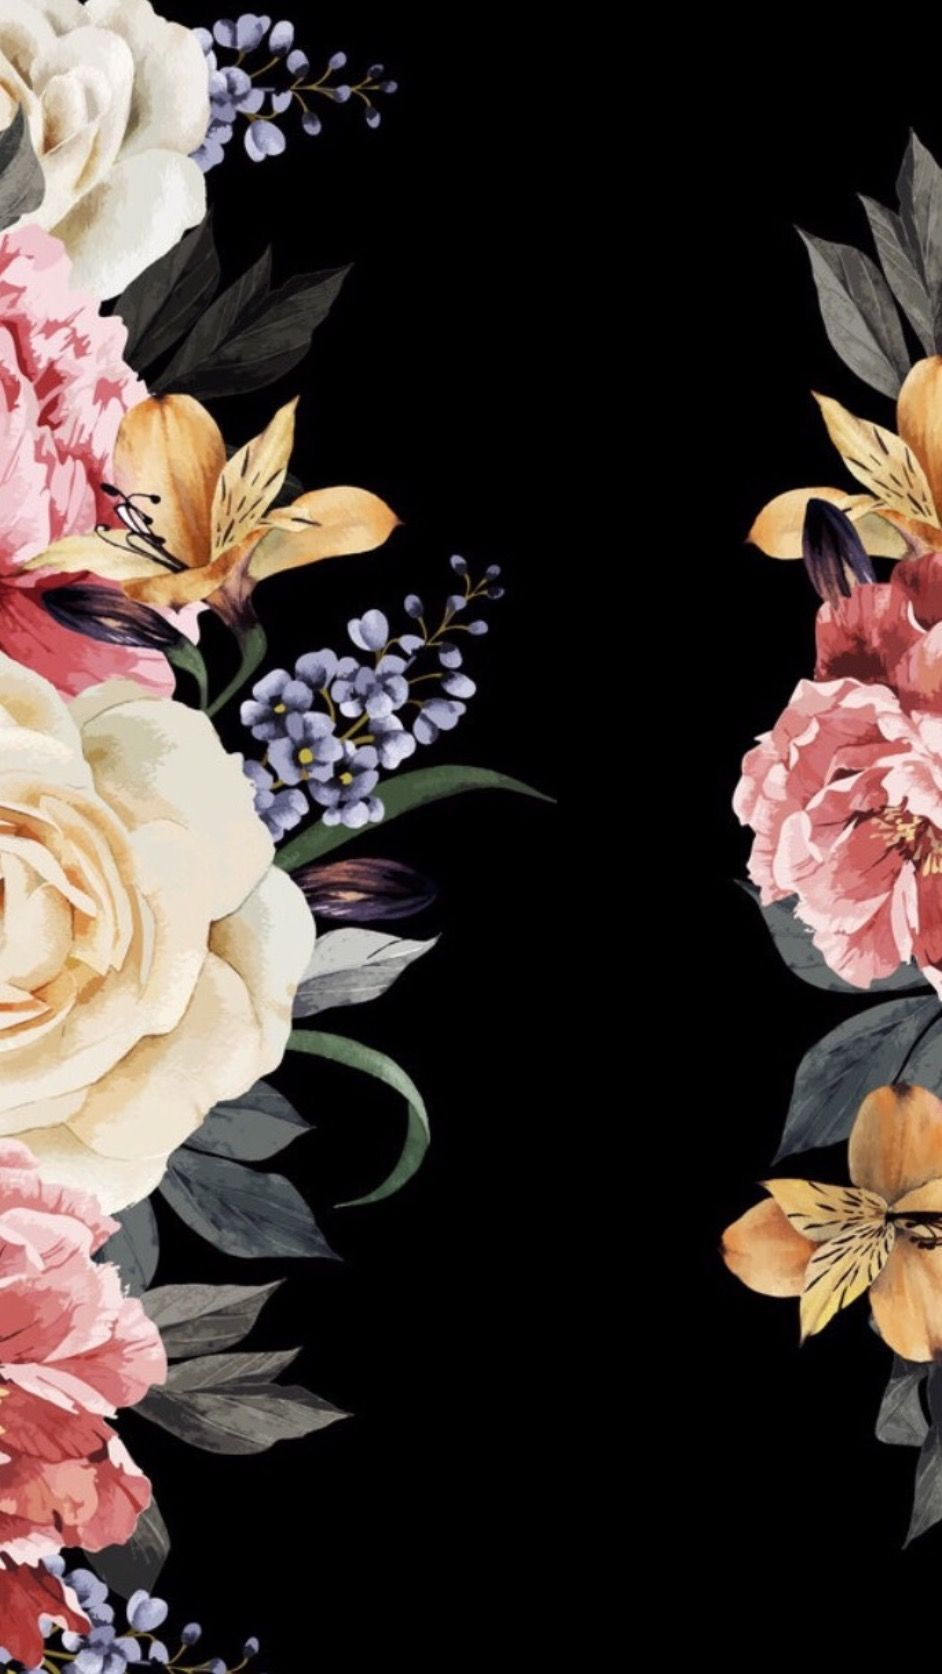 Pin By Vanessa Silva On Black Backgrounds Flower Iphone Wallpaper Black Background Wallpaper Locked Wallpaper